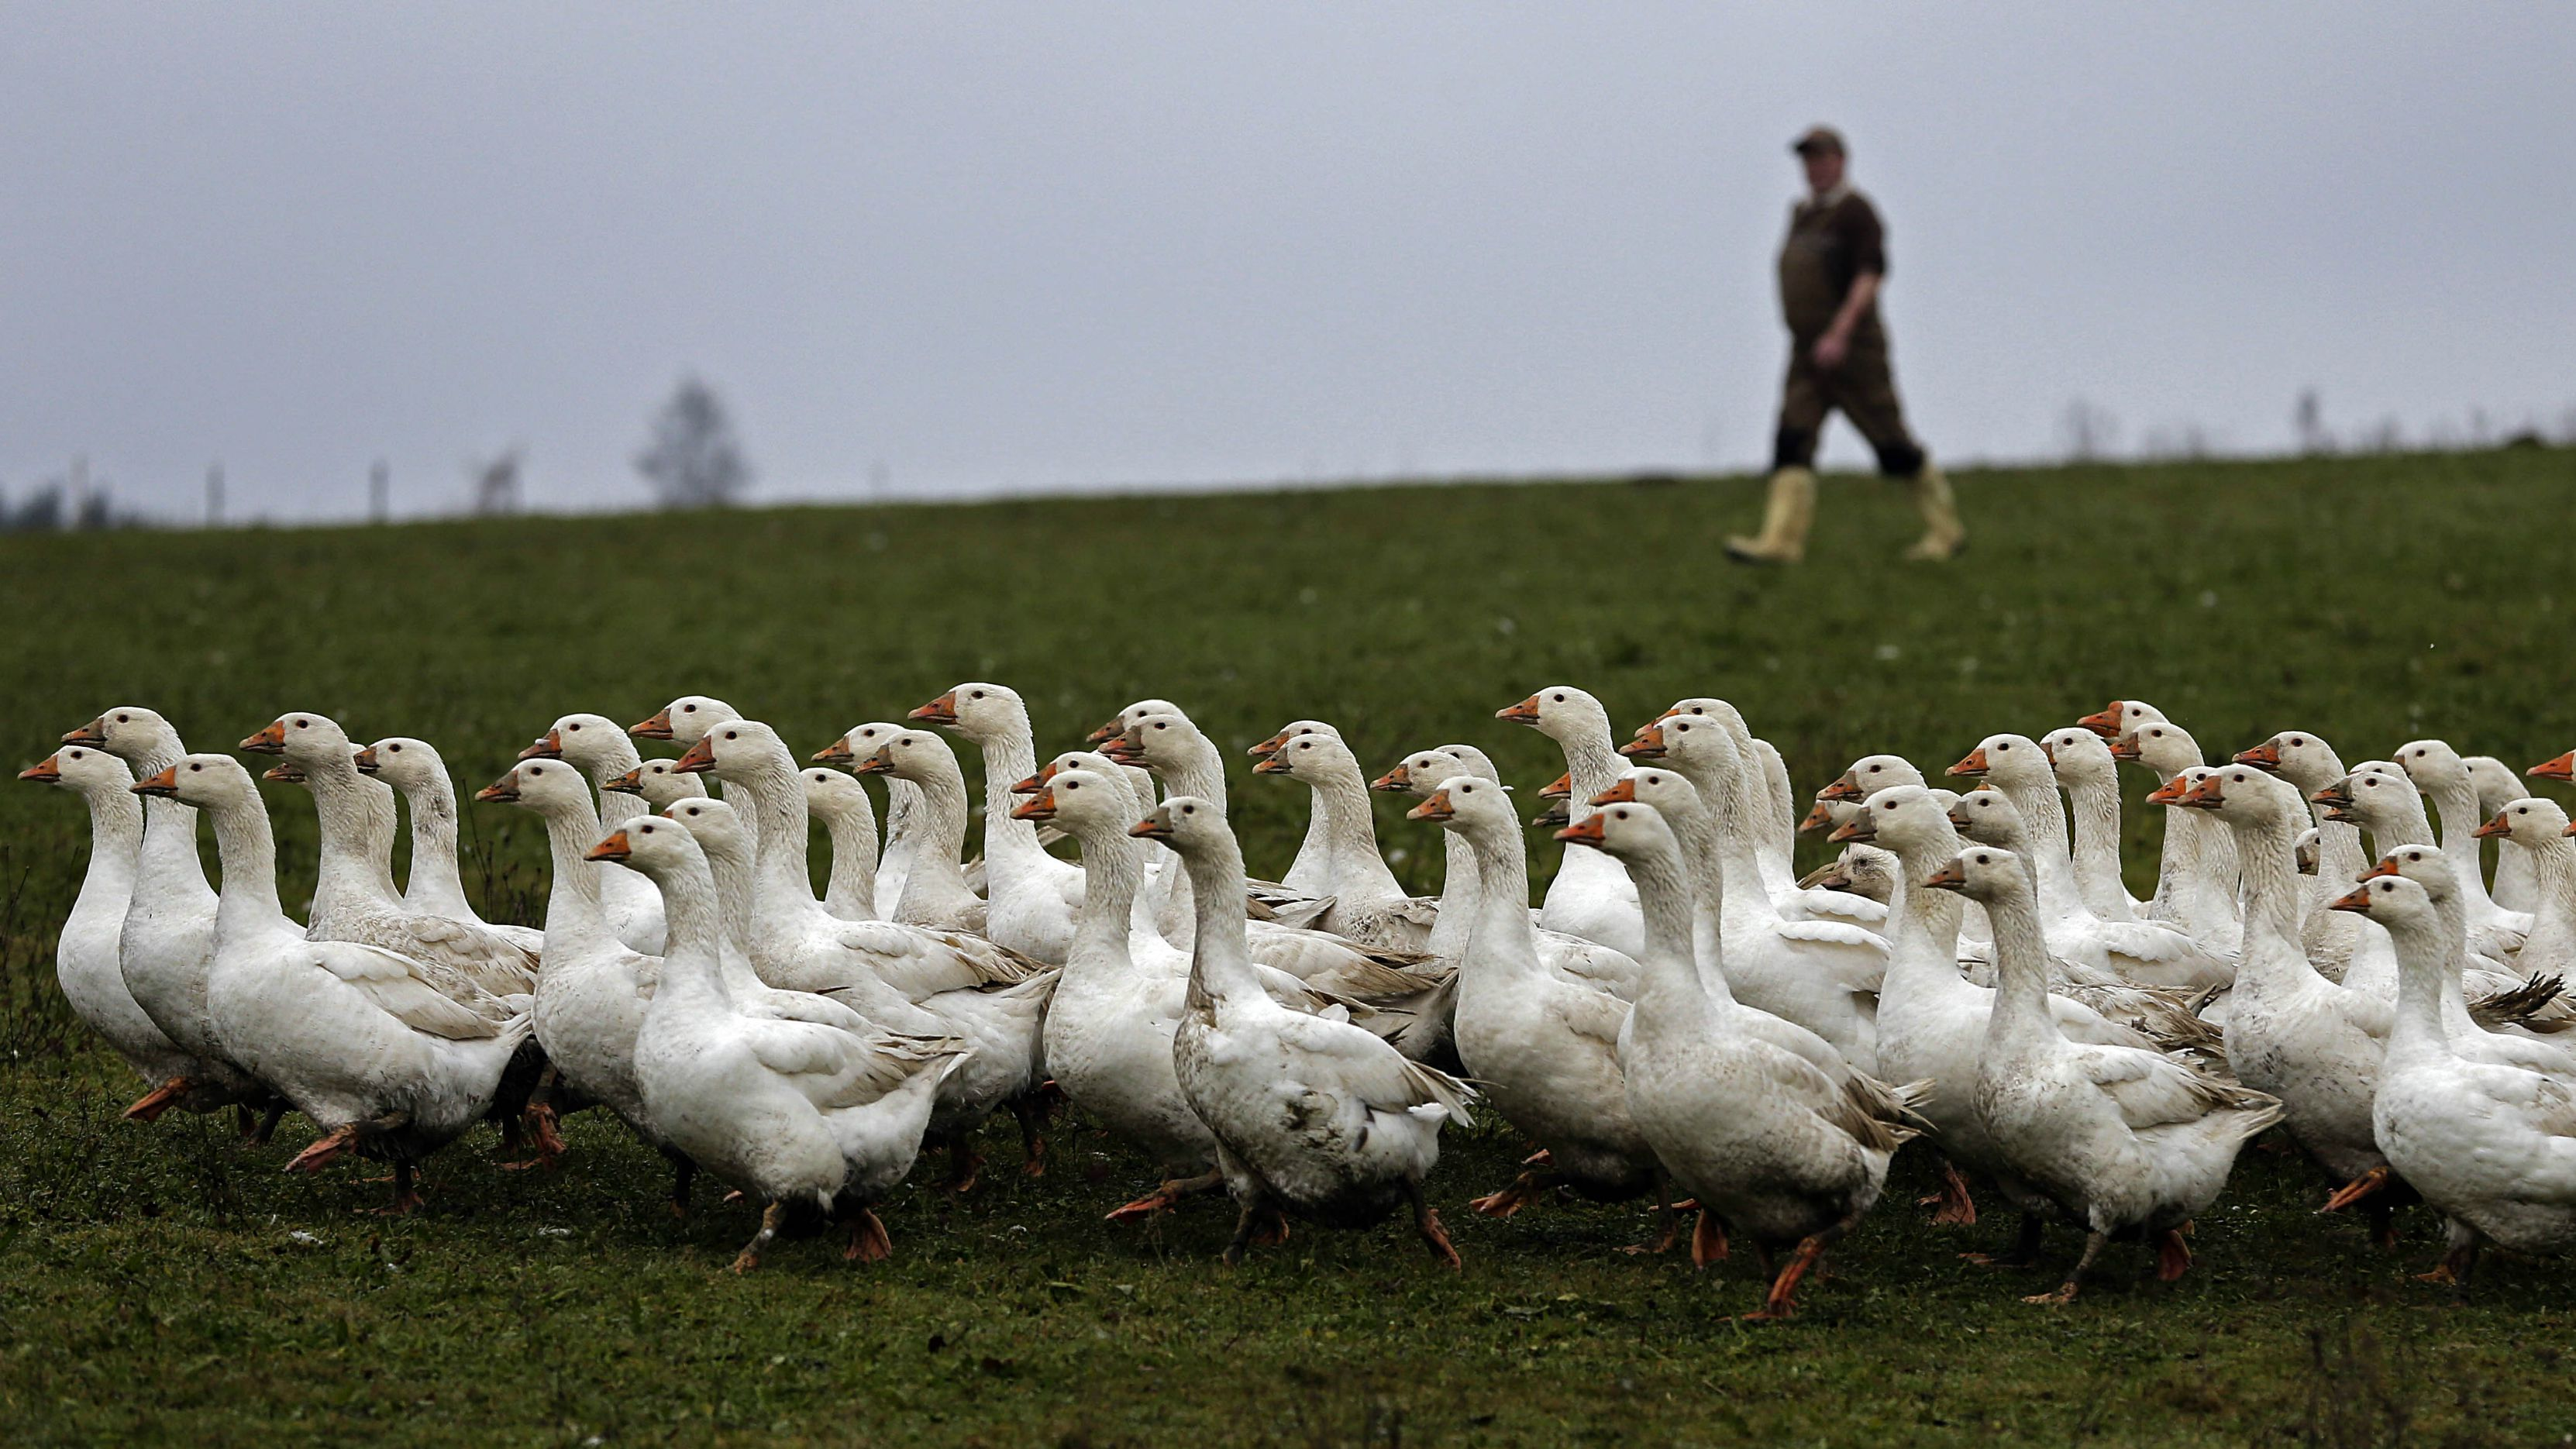 geese, down jackets, ethical down, traceable down, coats, outerwear